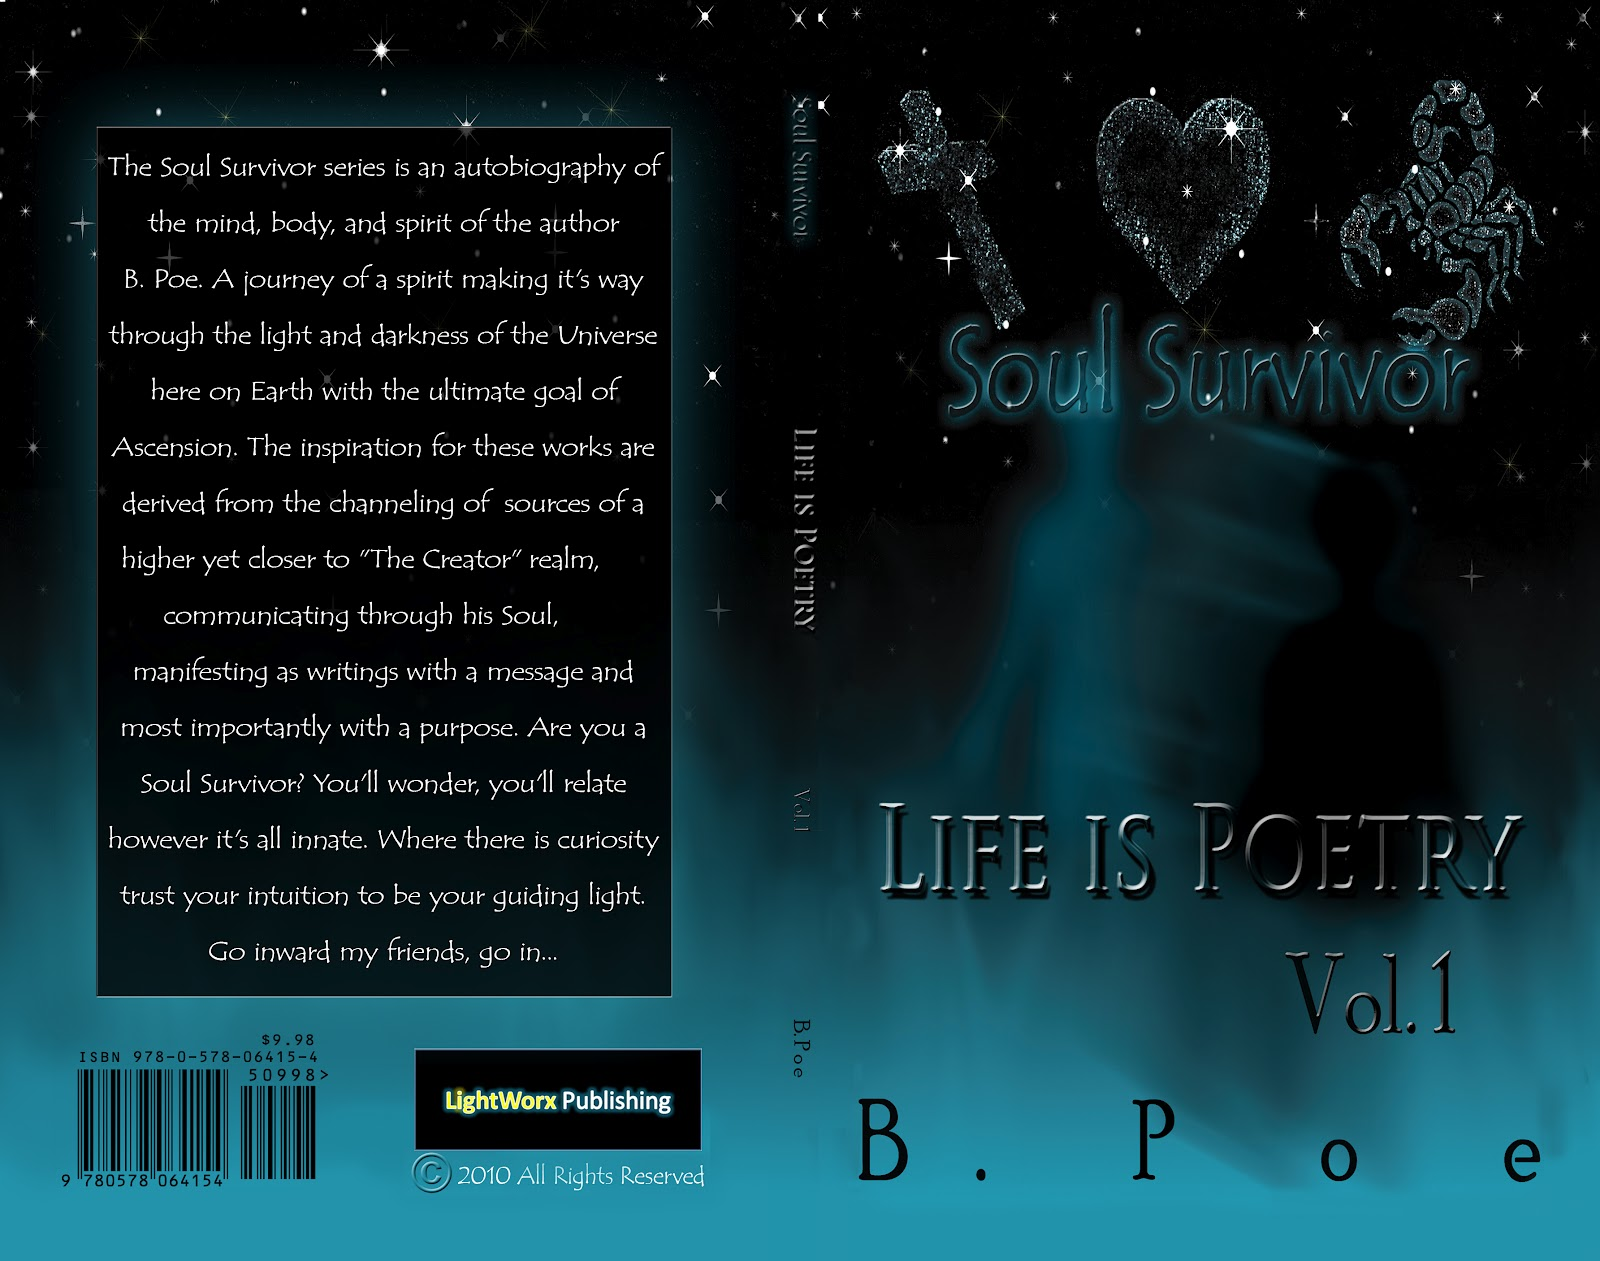 Soul survivor movement soul survivor vol1 life is poetry is now available in paperback on amazon httptinyurl8o4629k biocorpaavc Choice Image